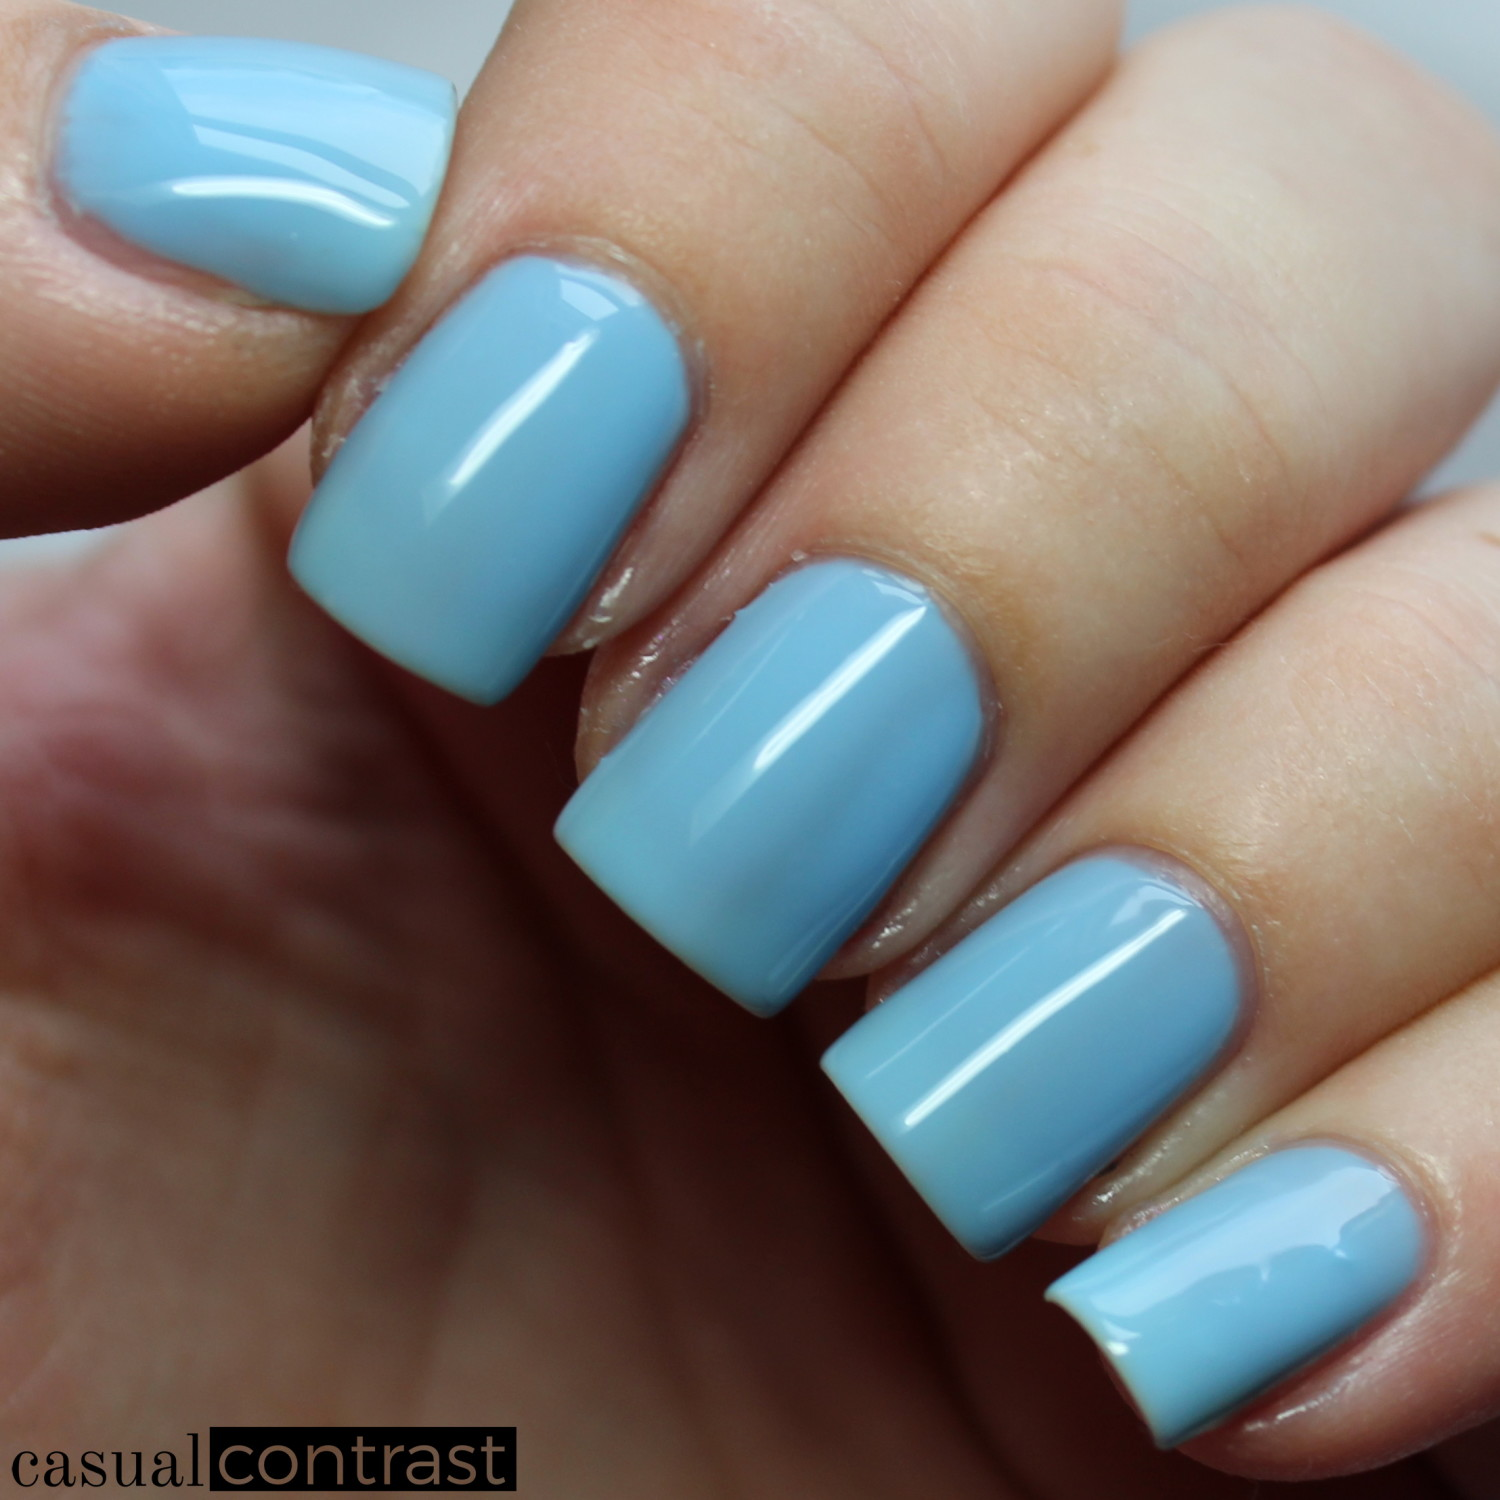 Forum on this topic: This Winter Nail Art Is the Craziest , this-winter-nail-art-is-the-craziest/